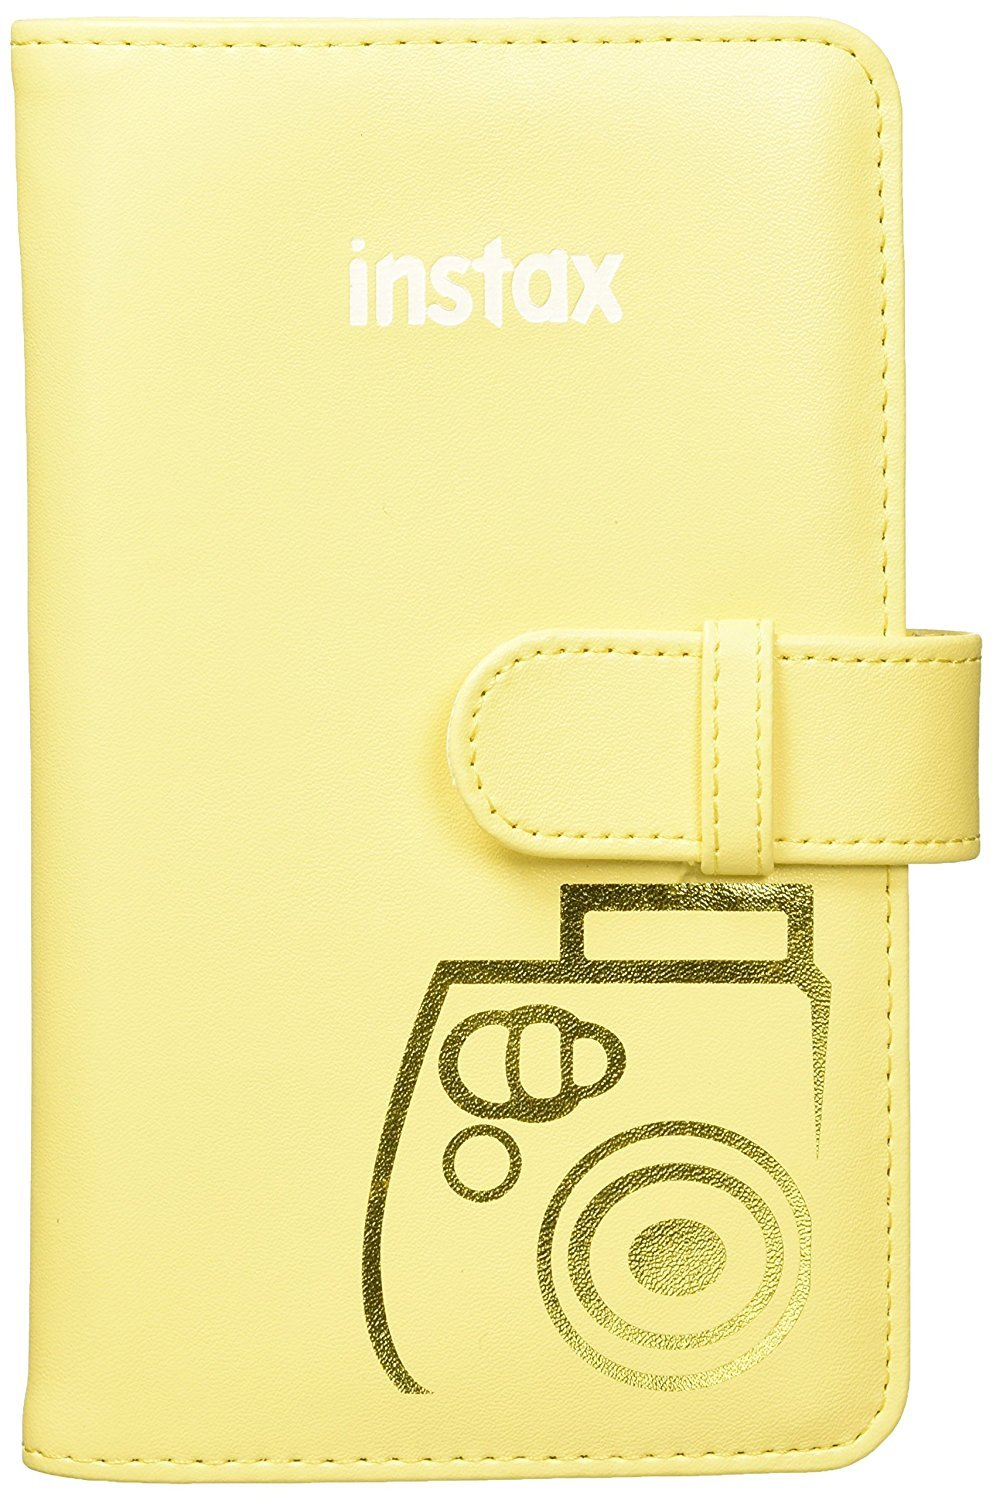 Fujifilm Instax Mini 9 (Yellow with Clear Accents), 3X Instax Film (60 Sheets), Groovy Case, Accordion Album and Hanging Pegs by Fujifilm (Image #4)